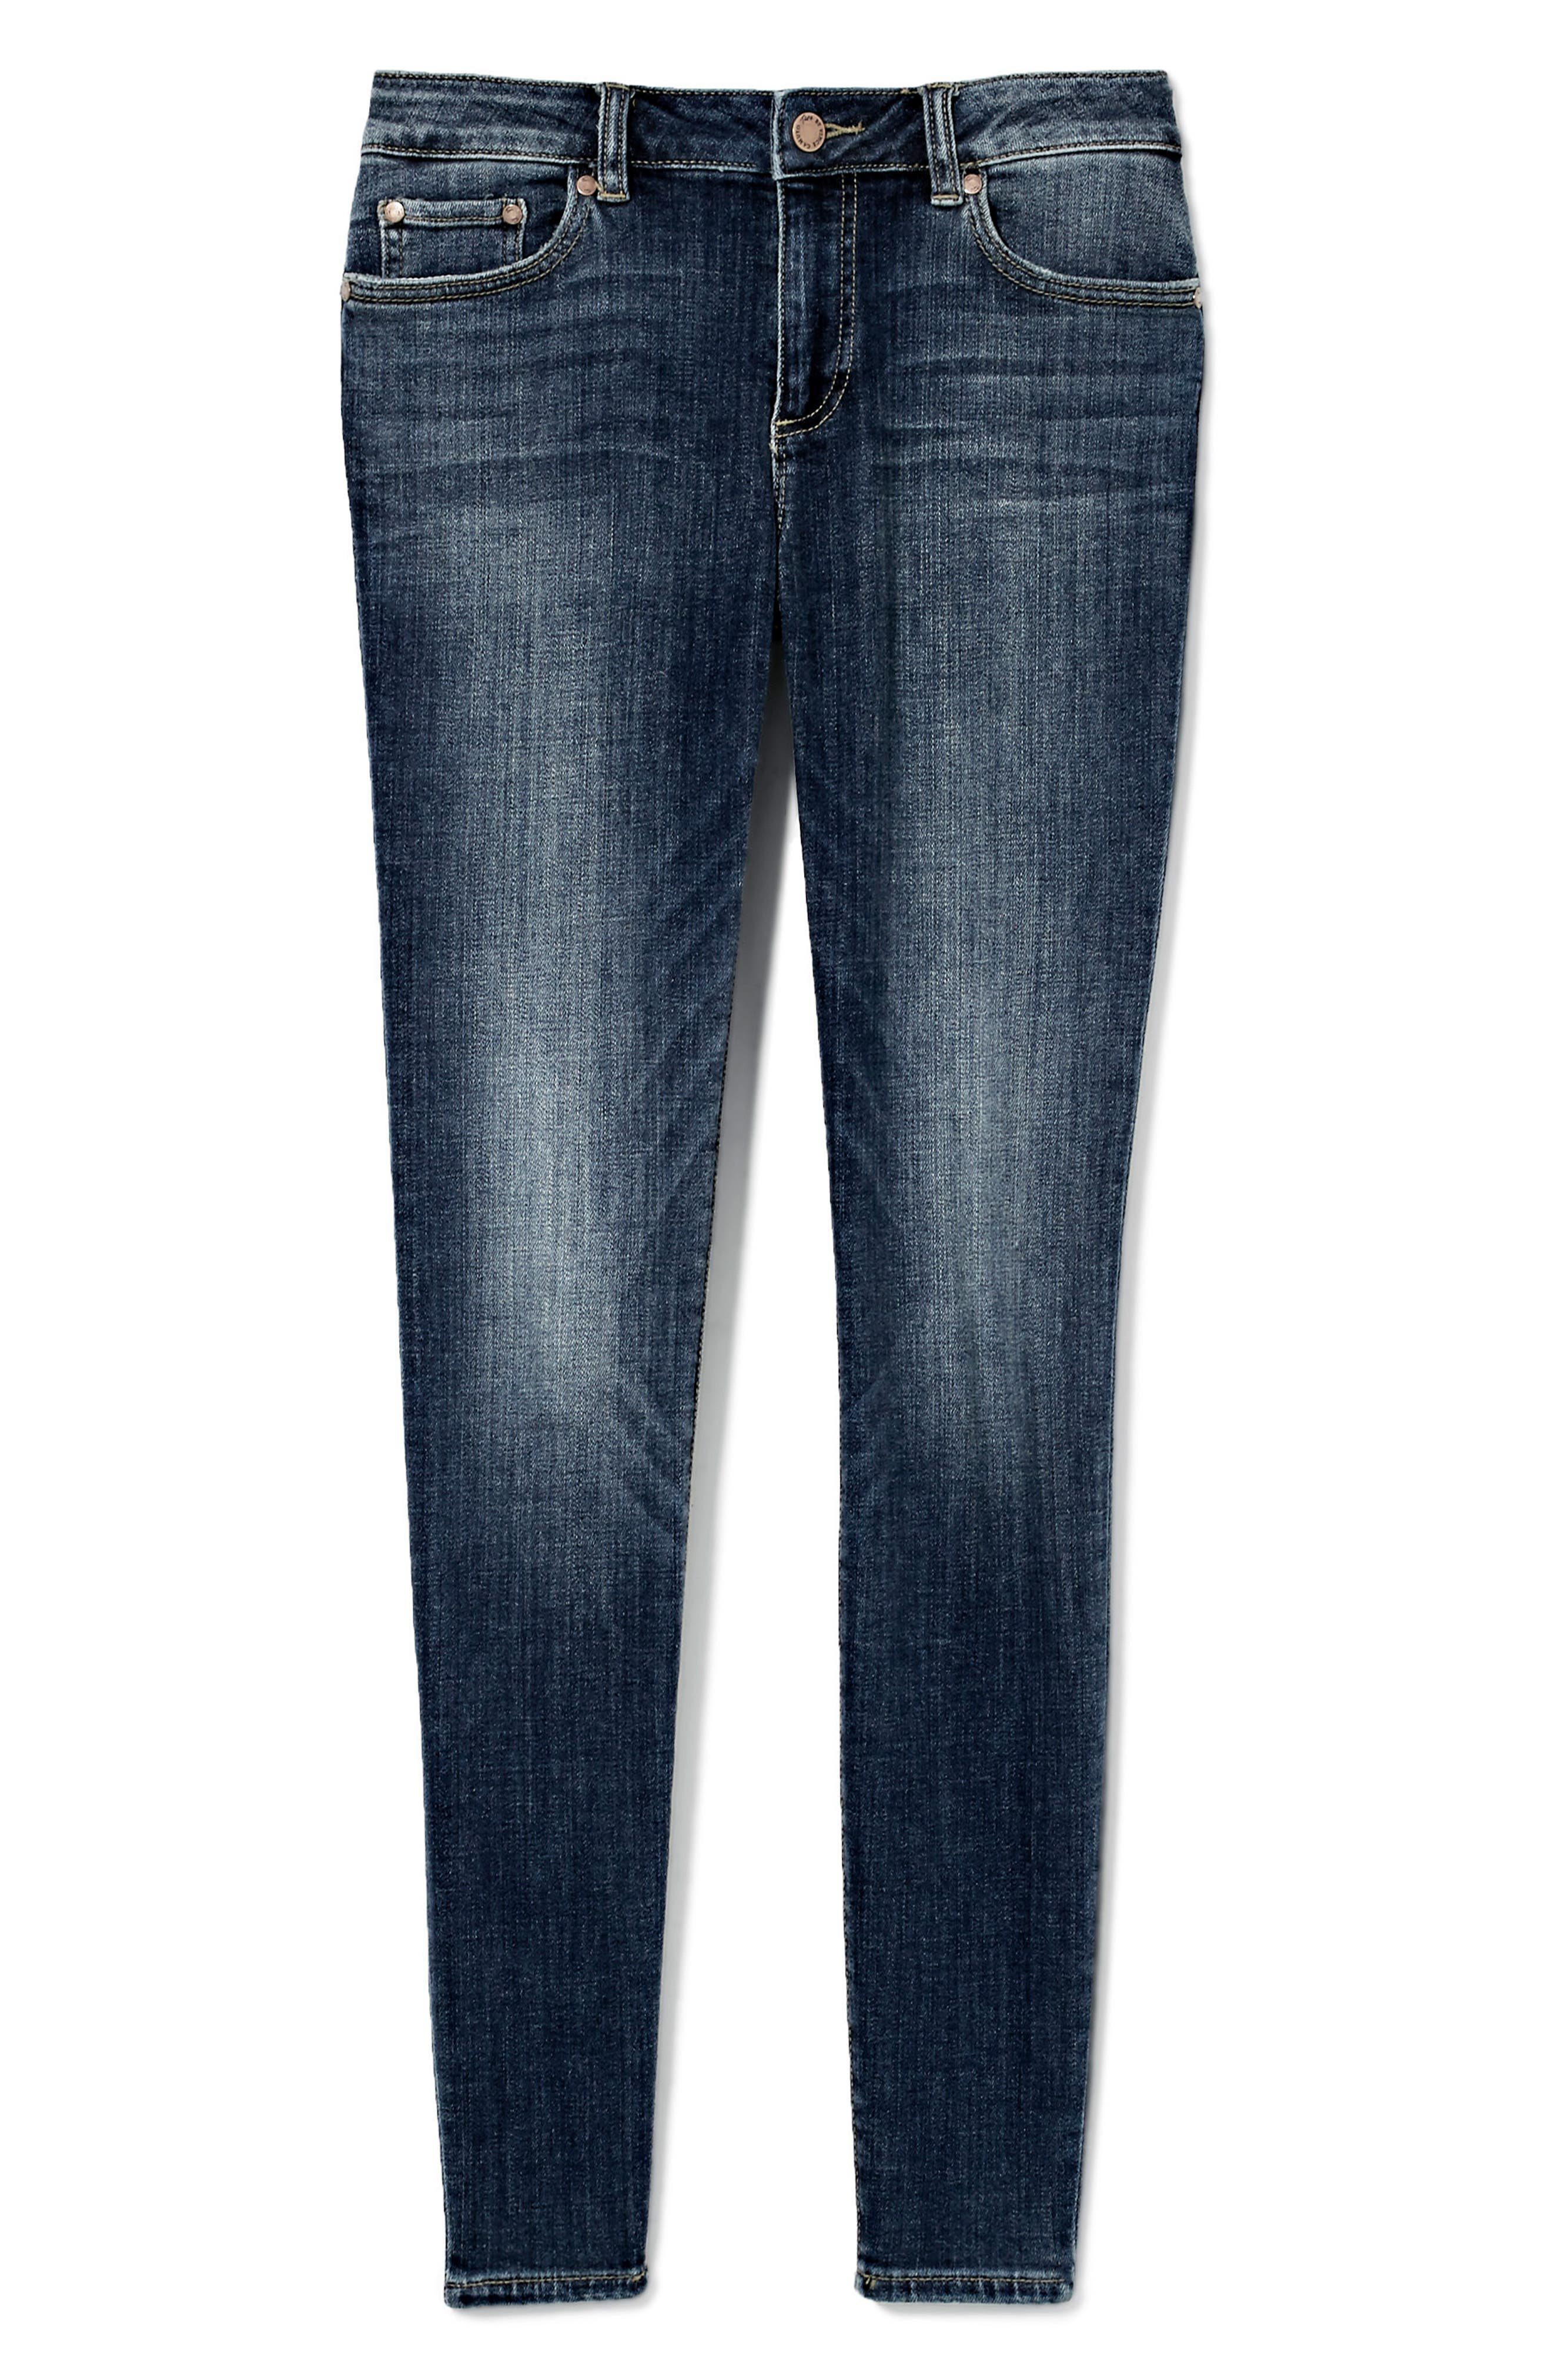 Stretch Skinny Jeans,                             Alternate thumbnail 2, color,                             DARK AUTHENTIC